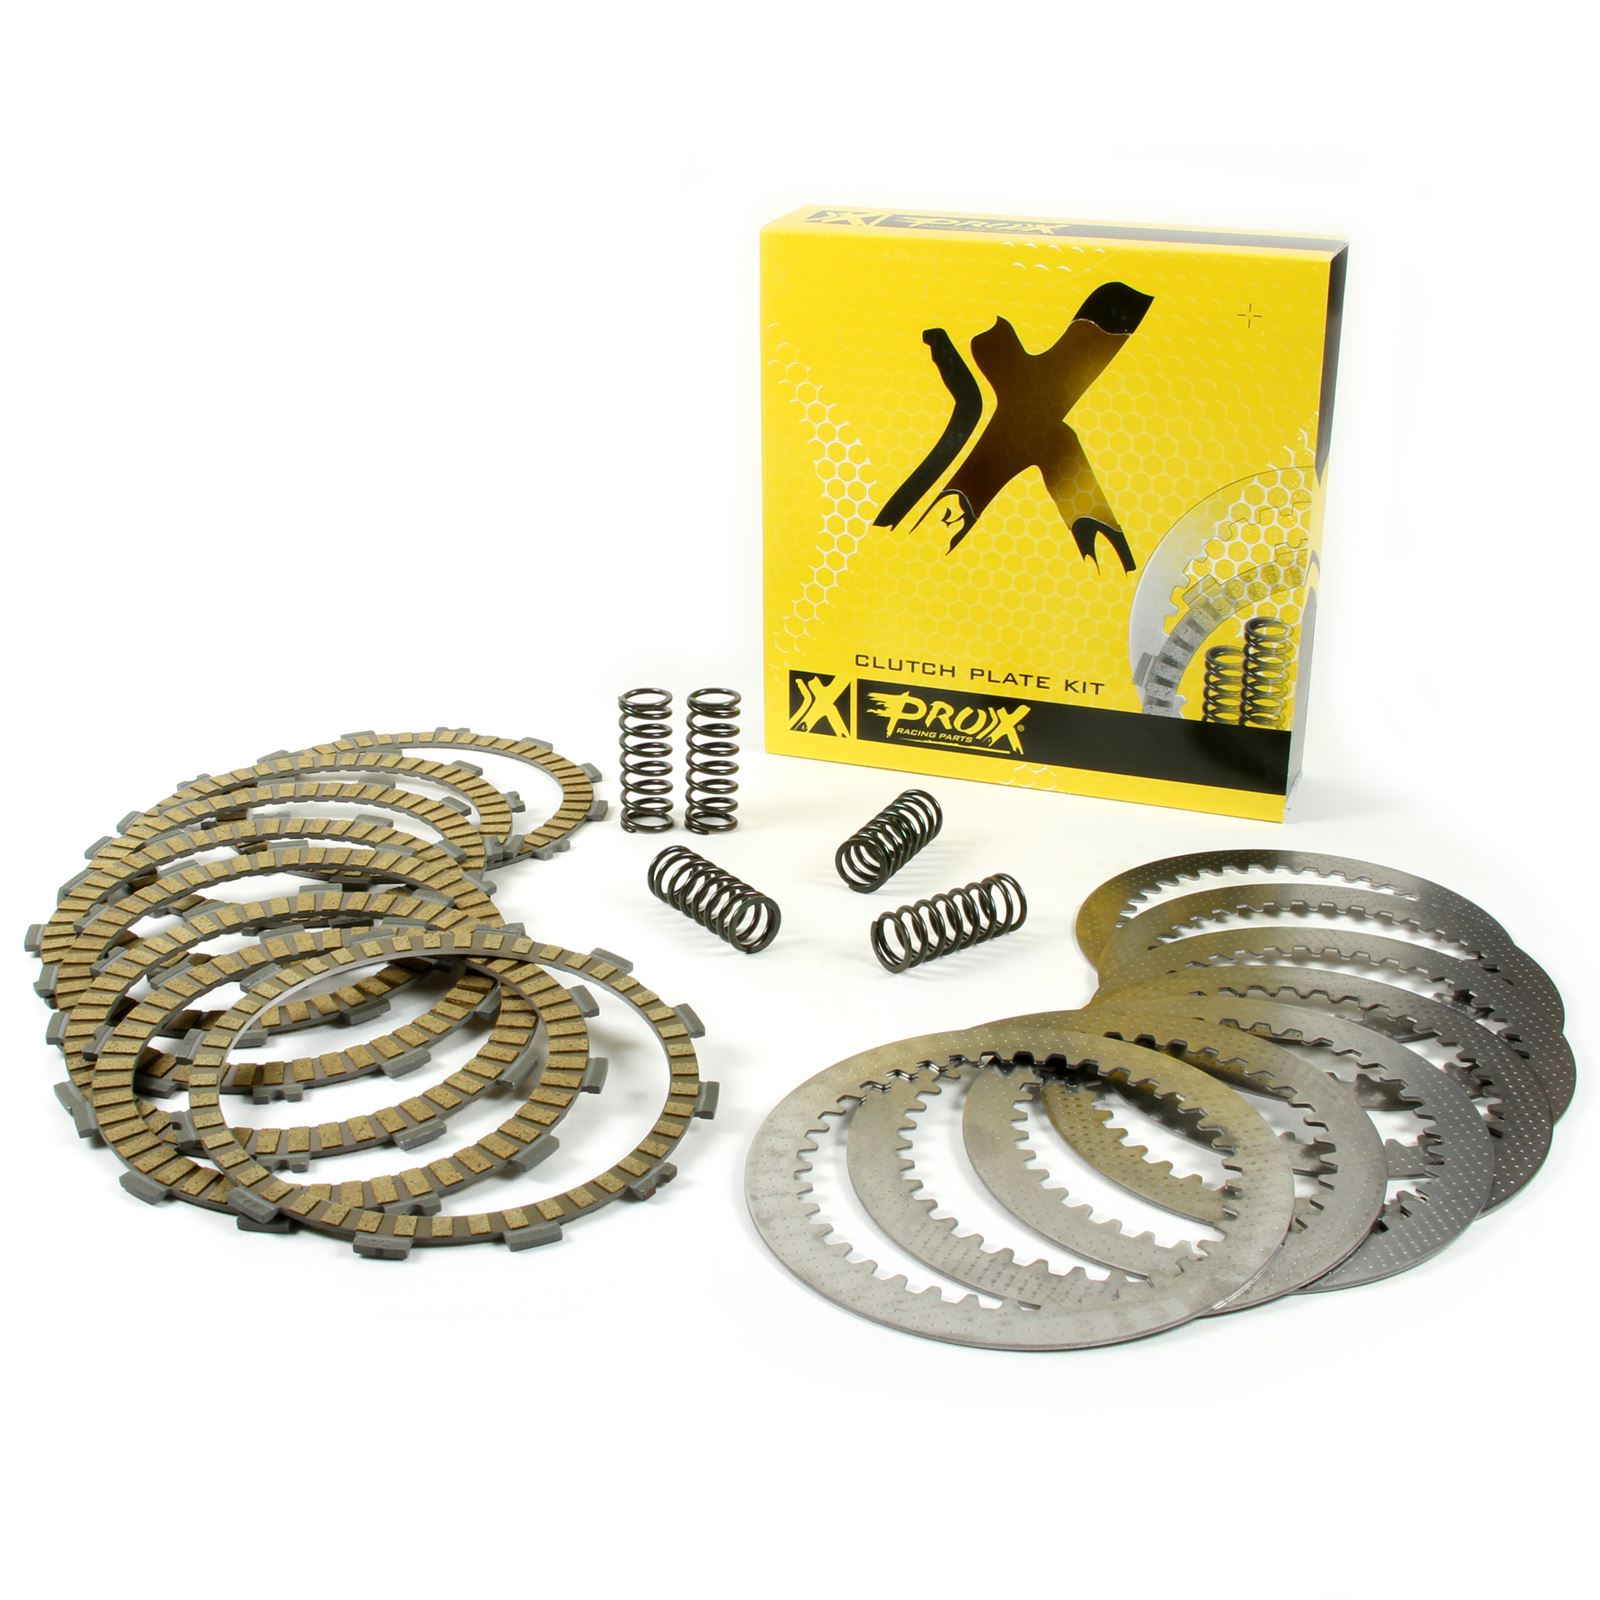 Prox Pro X Complete Clutch Plate Set W/Springs